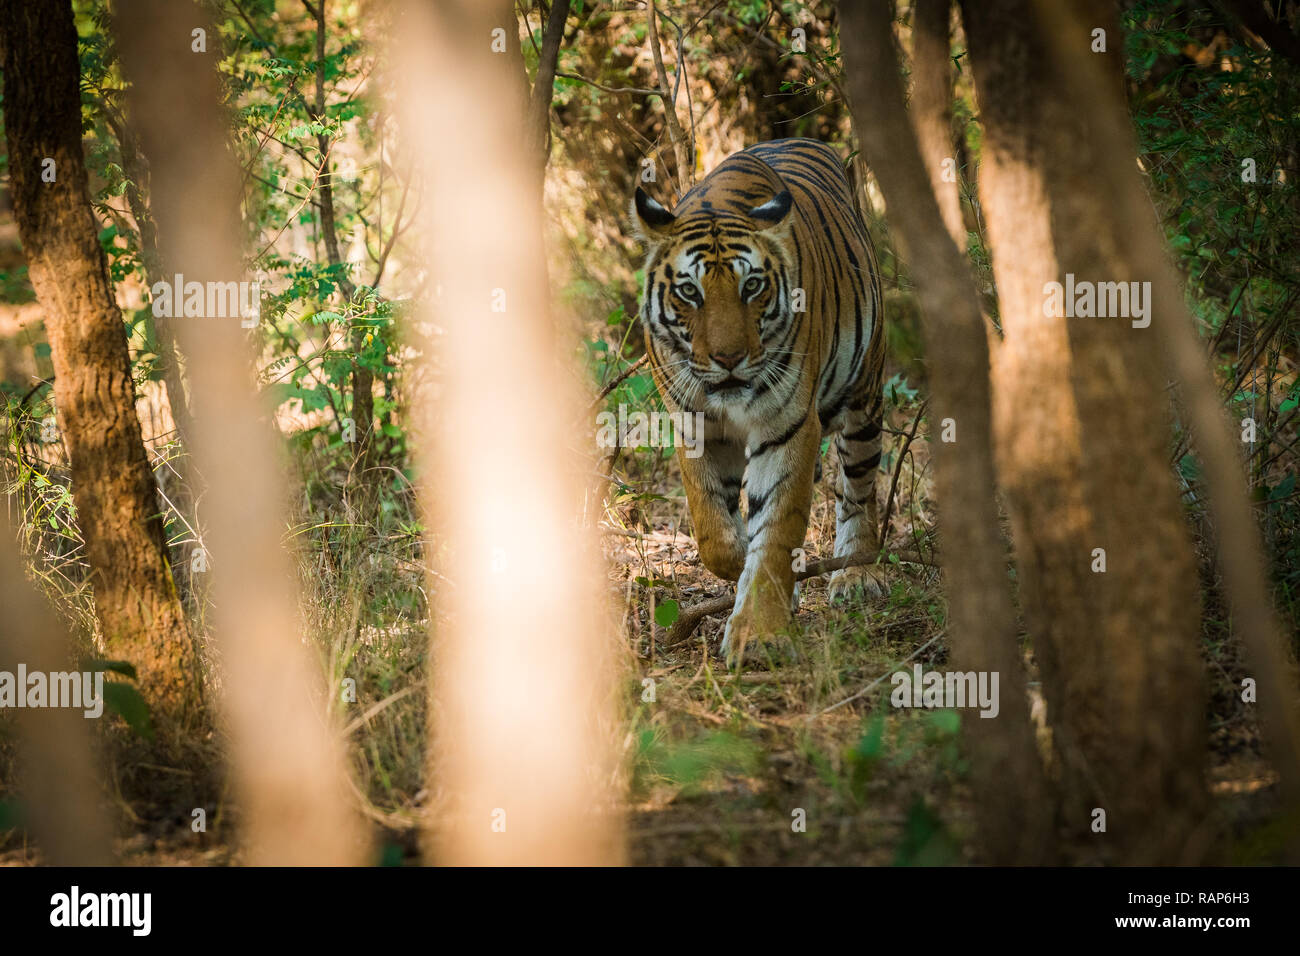 A newly mother famous tigress from Bandhavgarh National Park, India - Stock Image